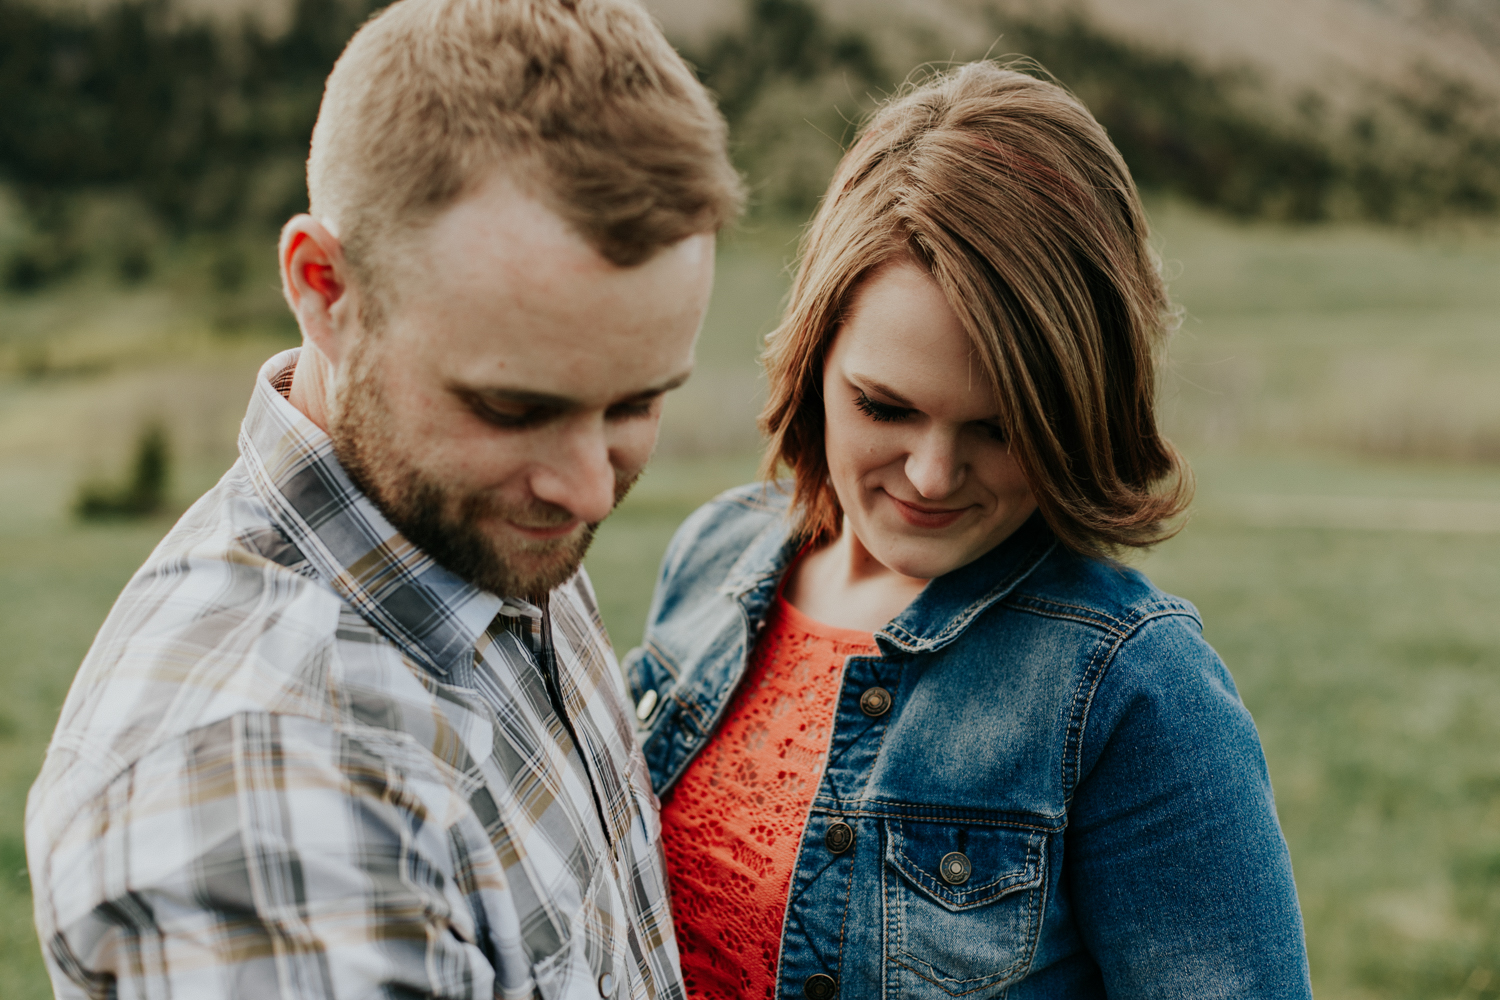 waterton-photographer-love-and-be-loved-photograph-mountain-engagement-luc-megan-picture-iamge-photo-23.jpg